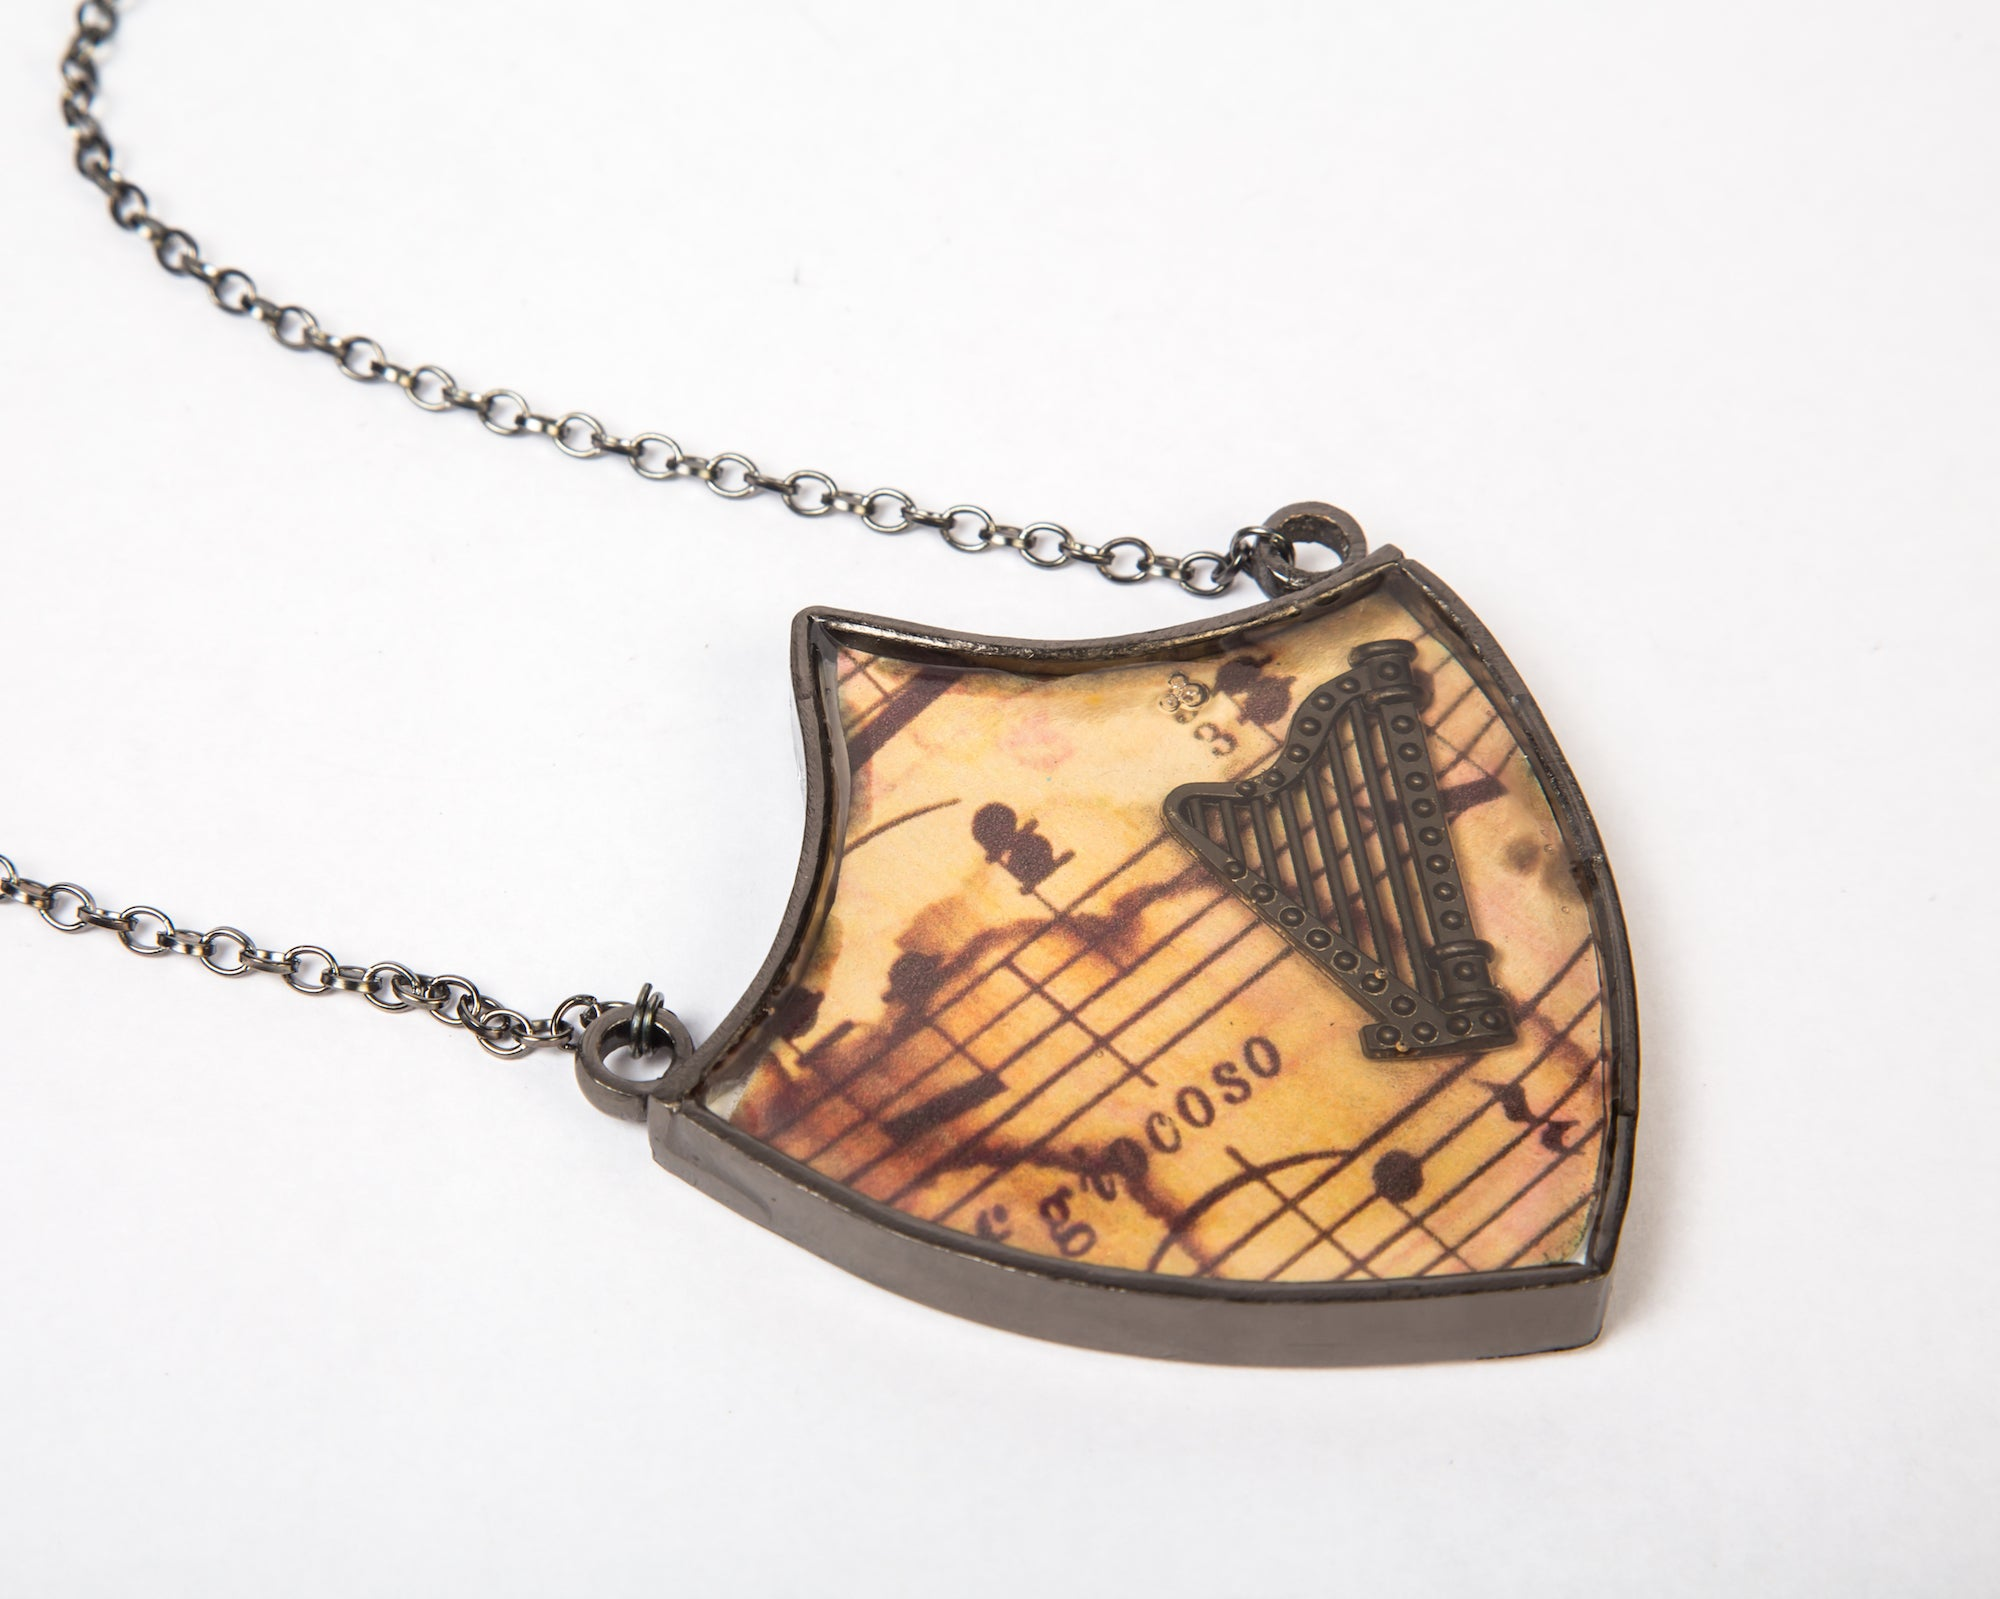 Copper with vintage finish harp musical neckpiece